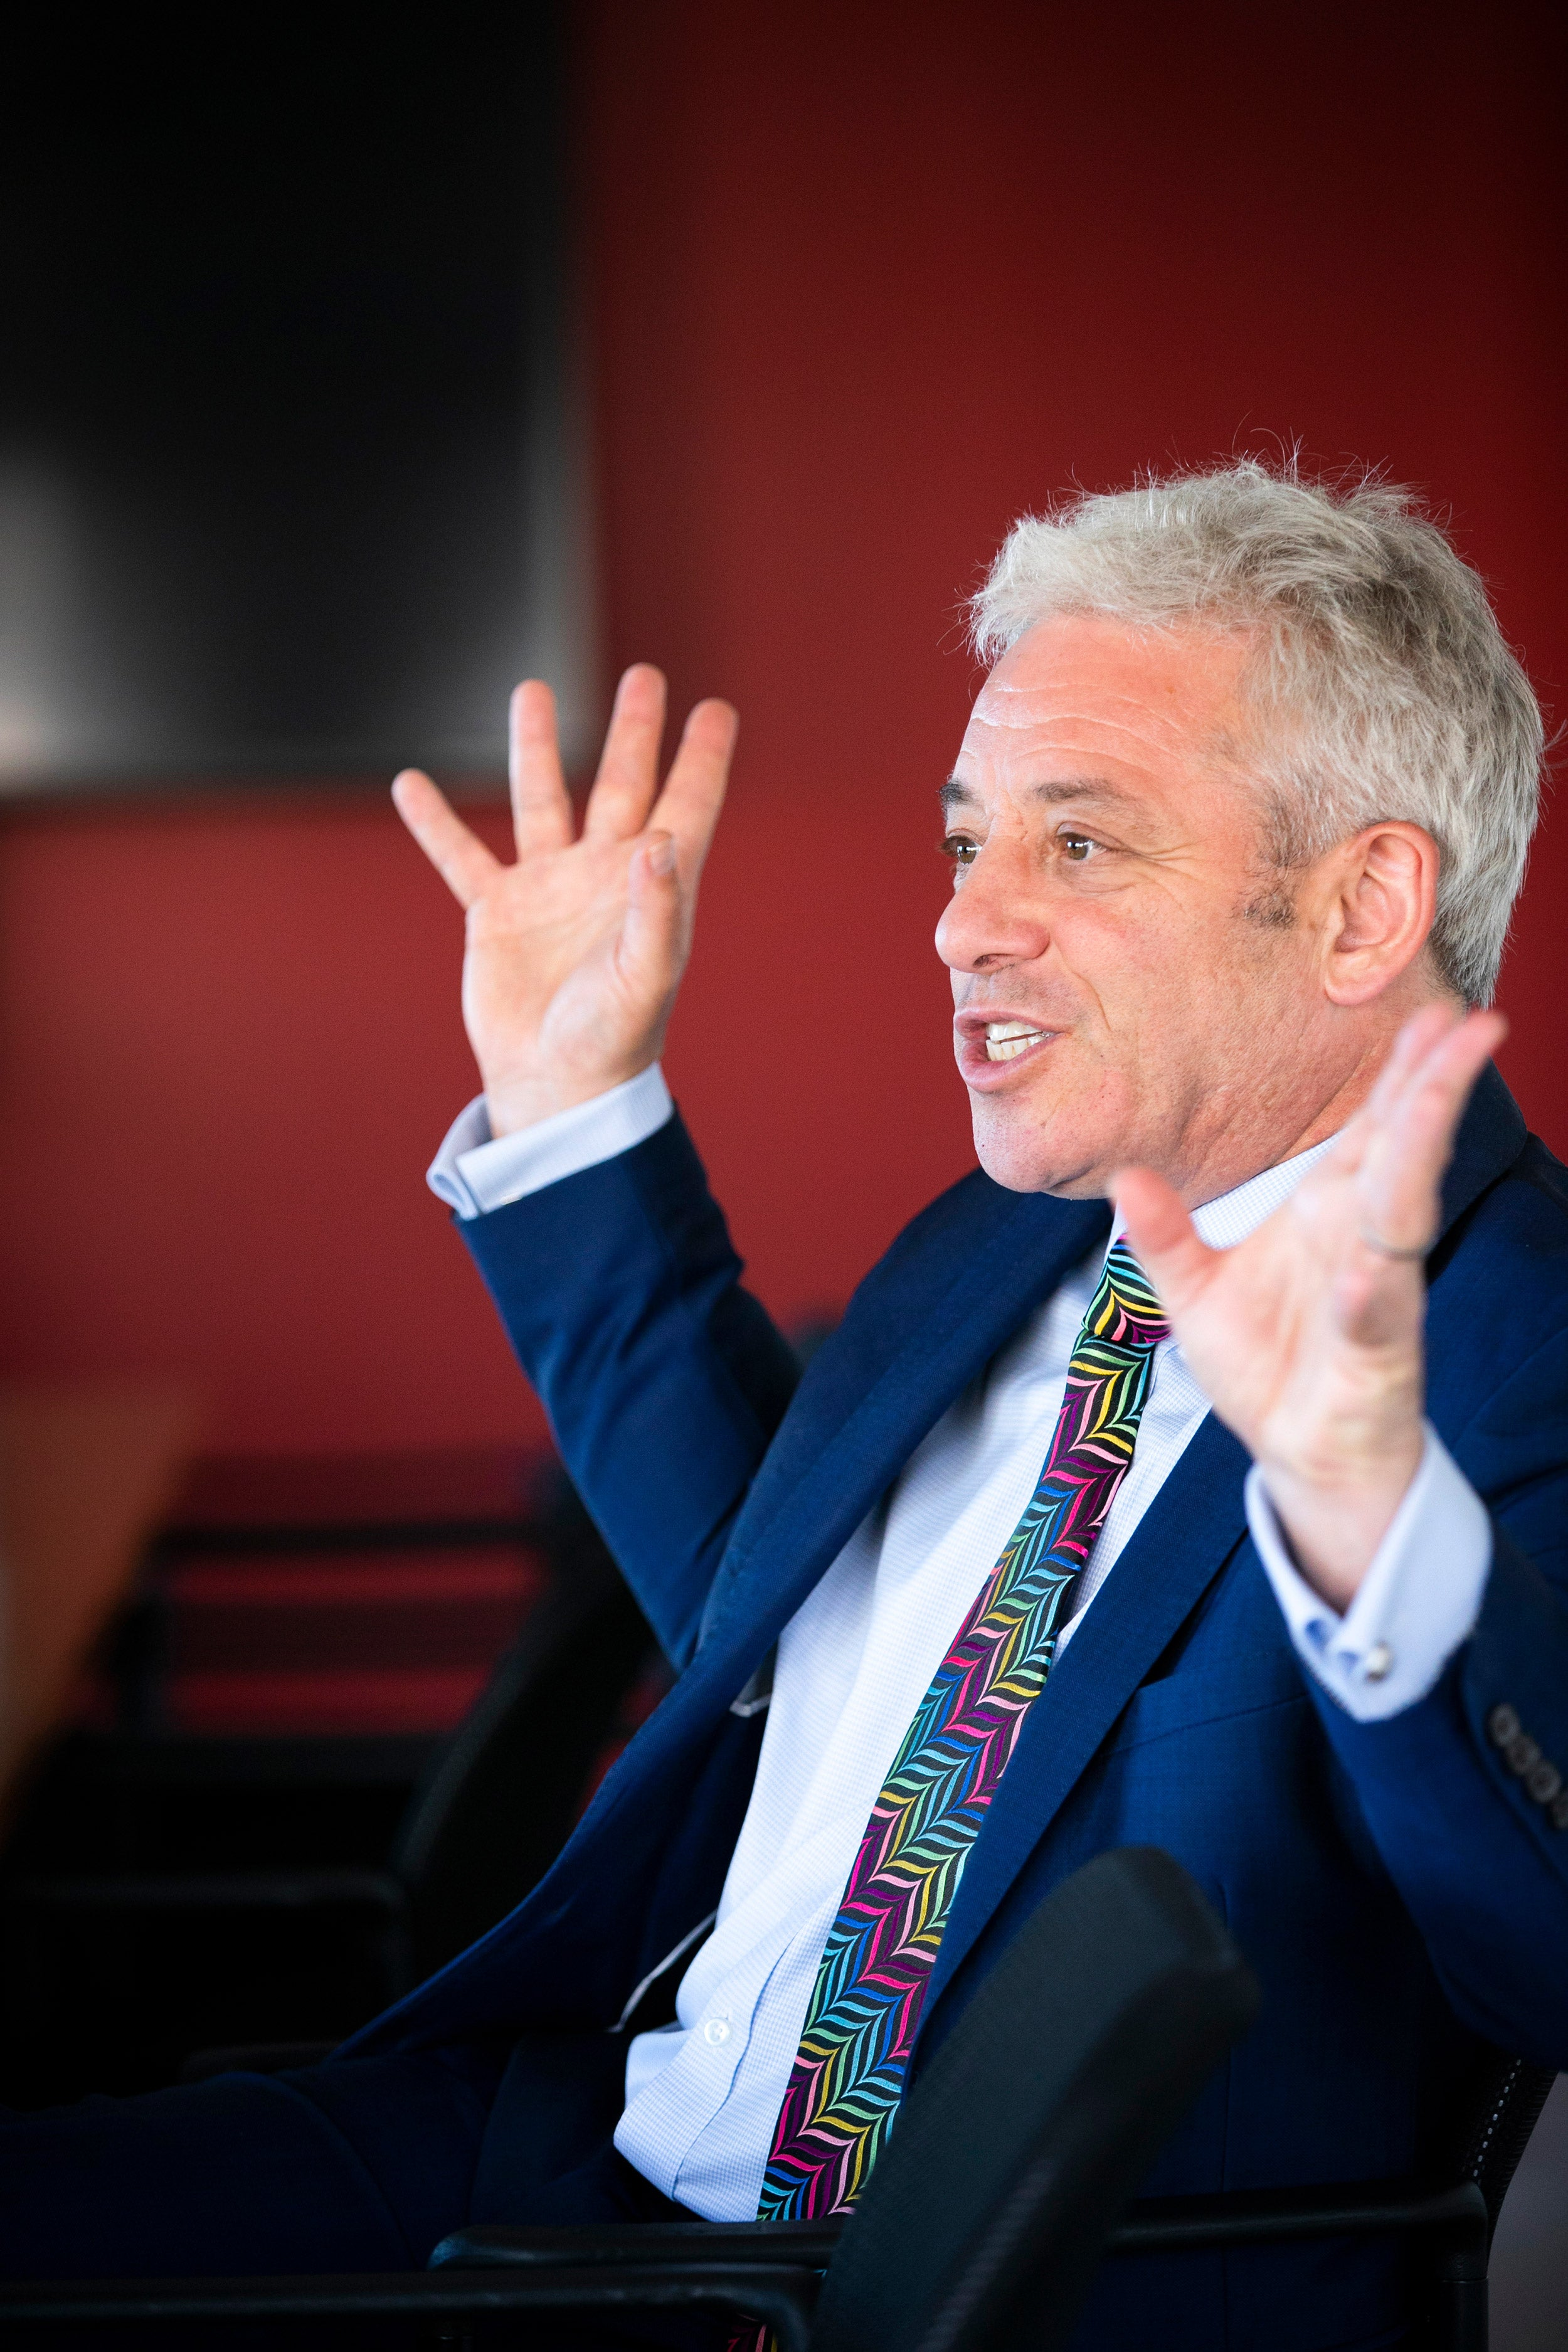 Speaker of the House of Commons John Bercow visits Harvard's campus